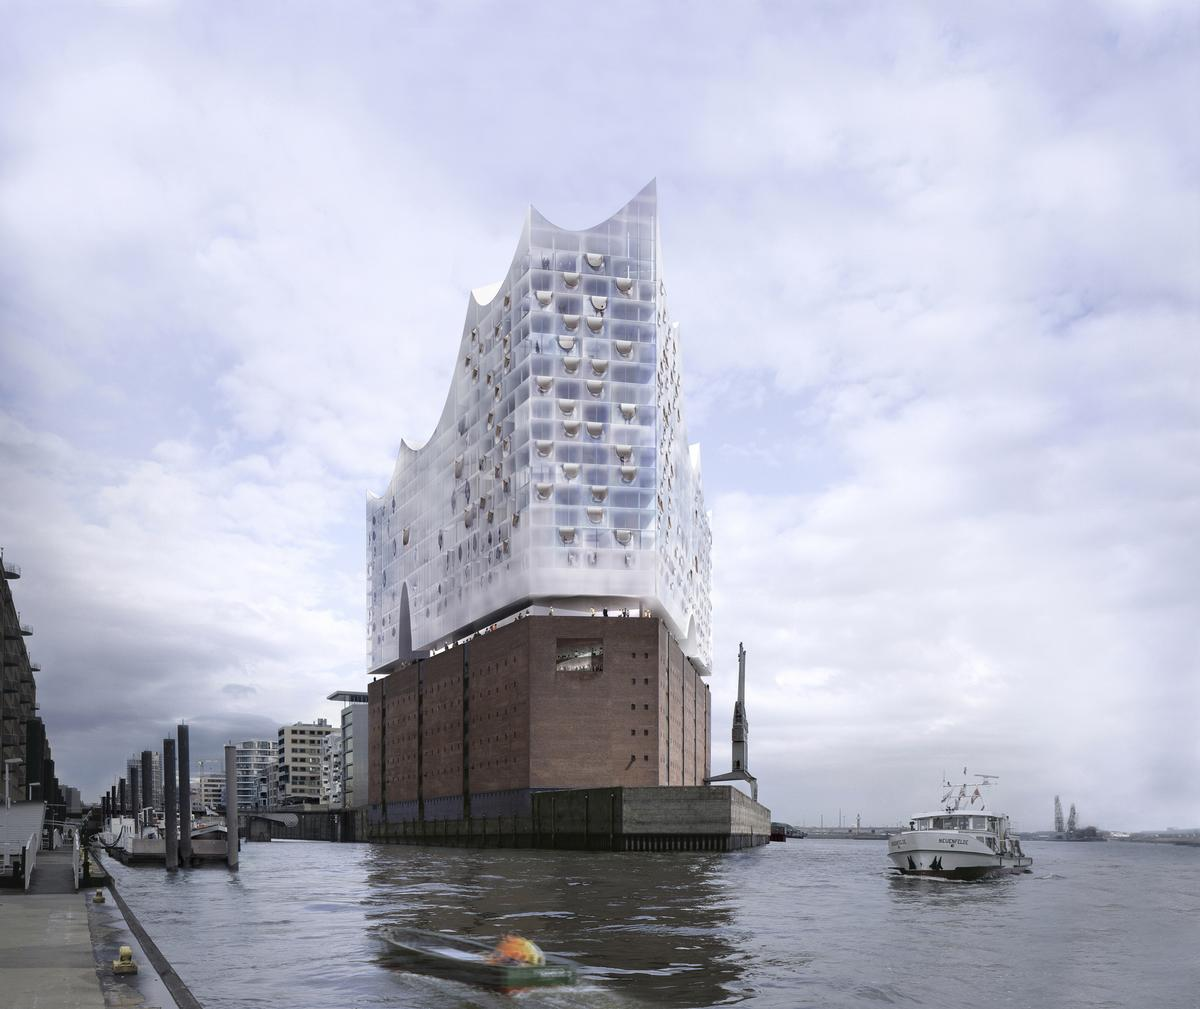 The Westin Hamburg will open next year in the highly anticipated Elbe Philharmonic complex / Elbe Philharmonic